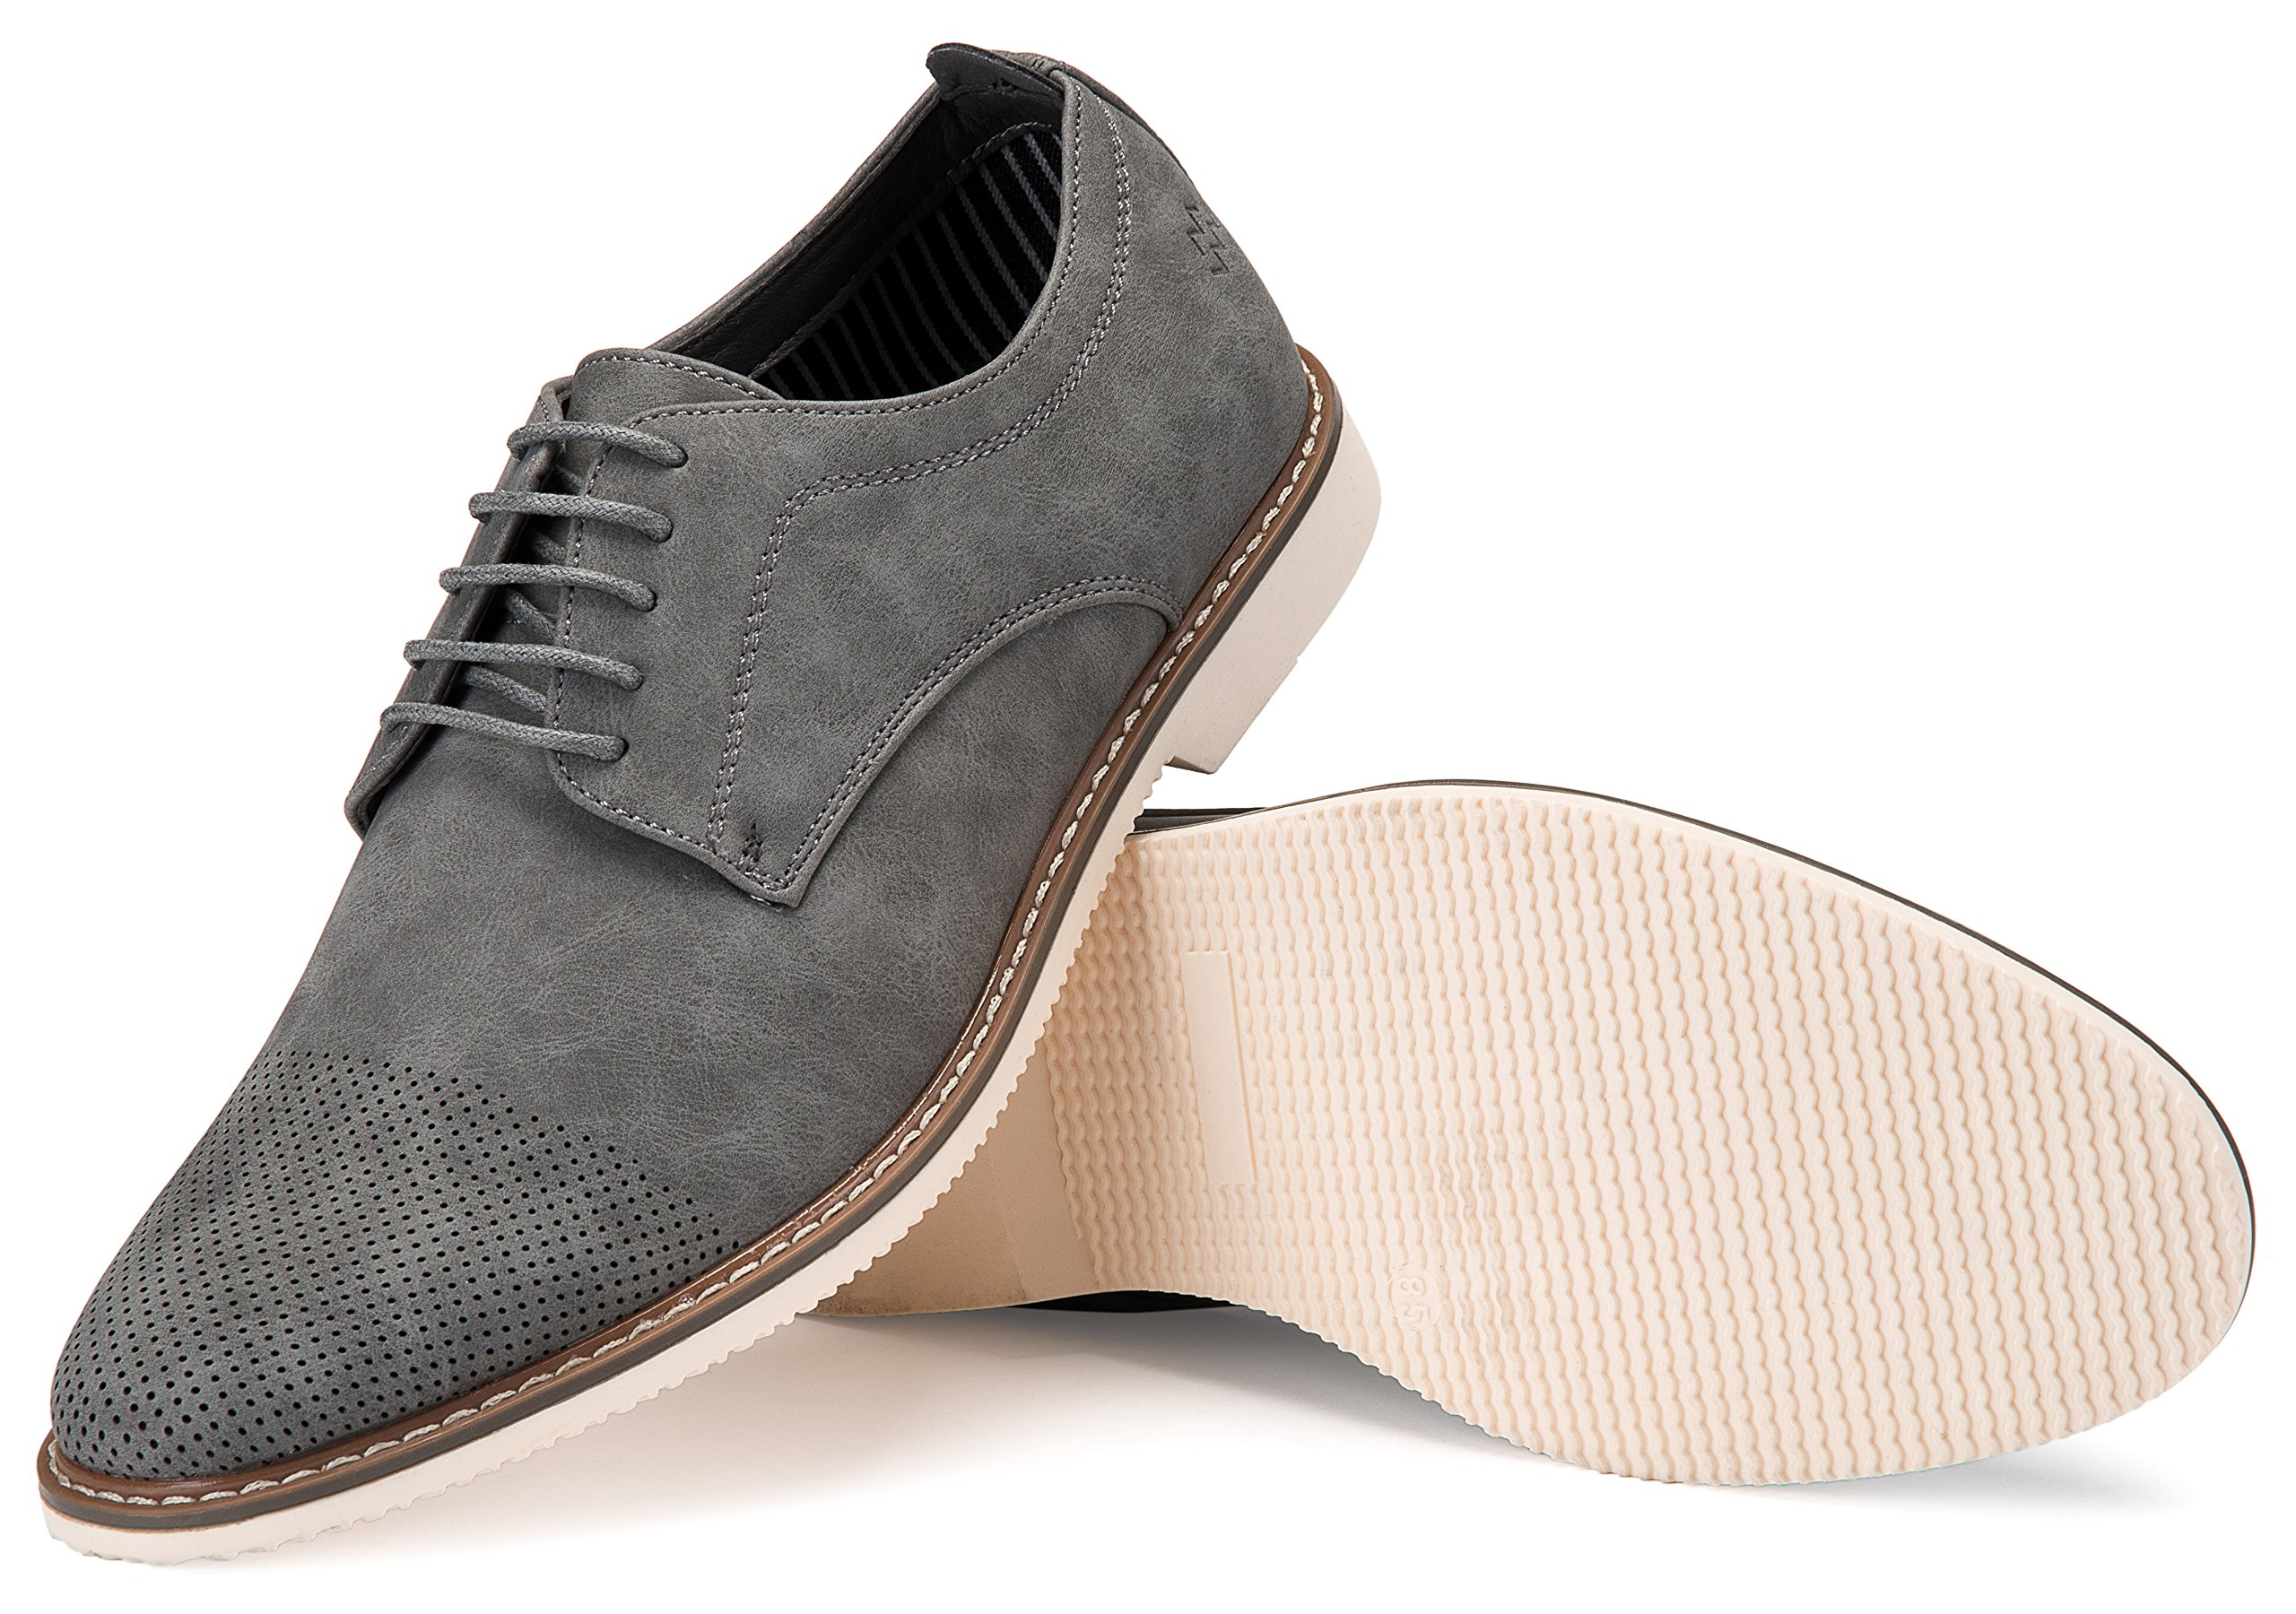 Mio Marino Mens Casual Shoes - Suede Shoes - Perforated Toe - Oxford Shoes for Men, in A Shoe Bag